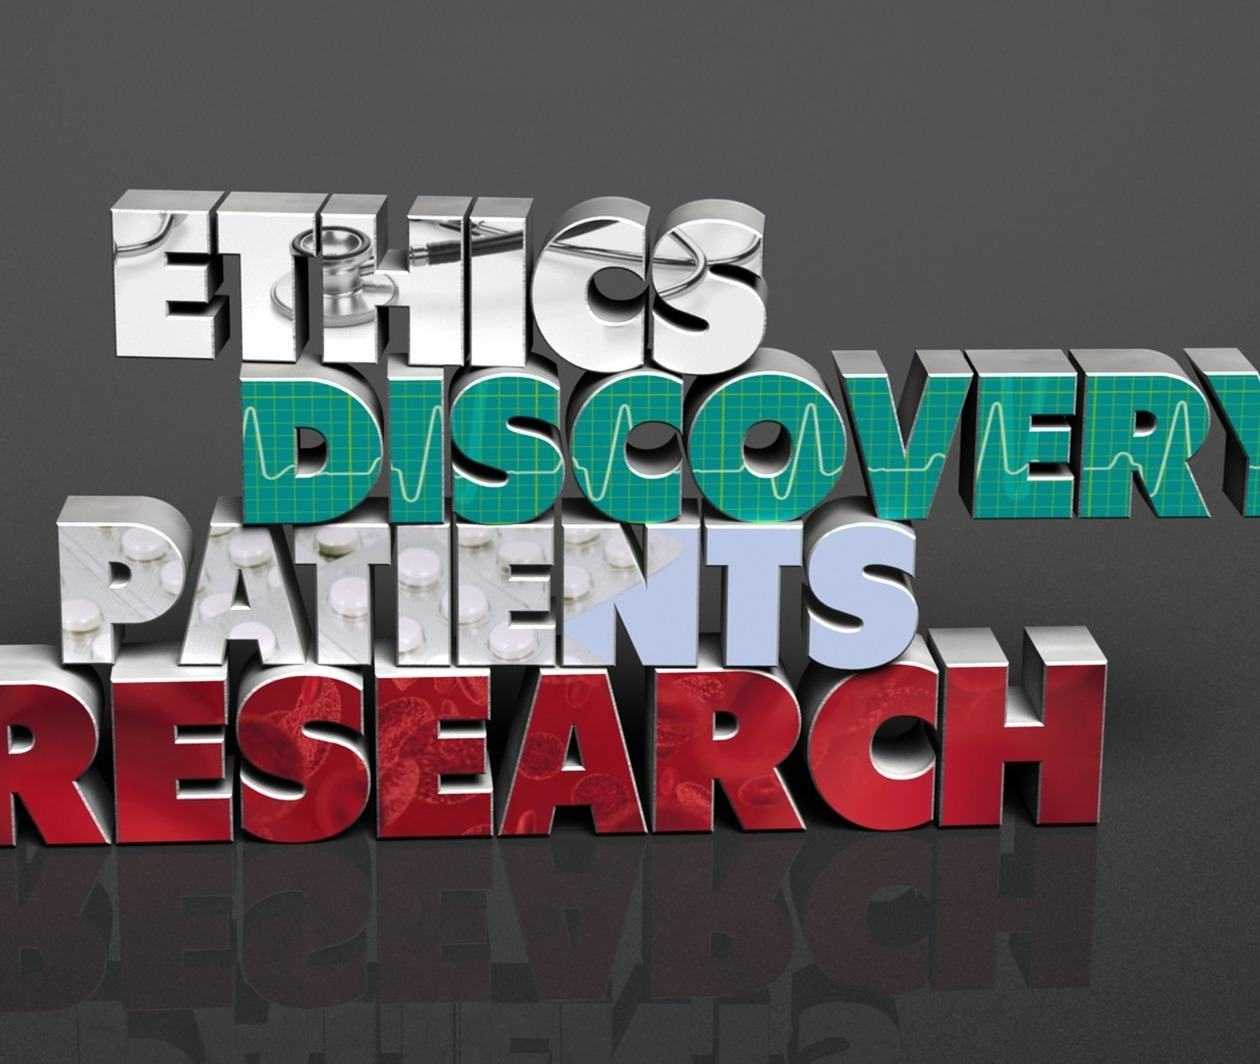 Improving Healthcare Through Clinical Research